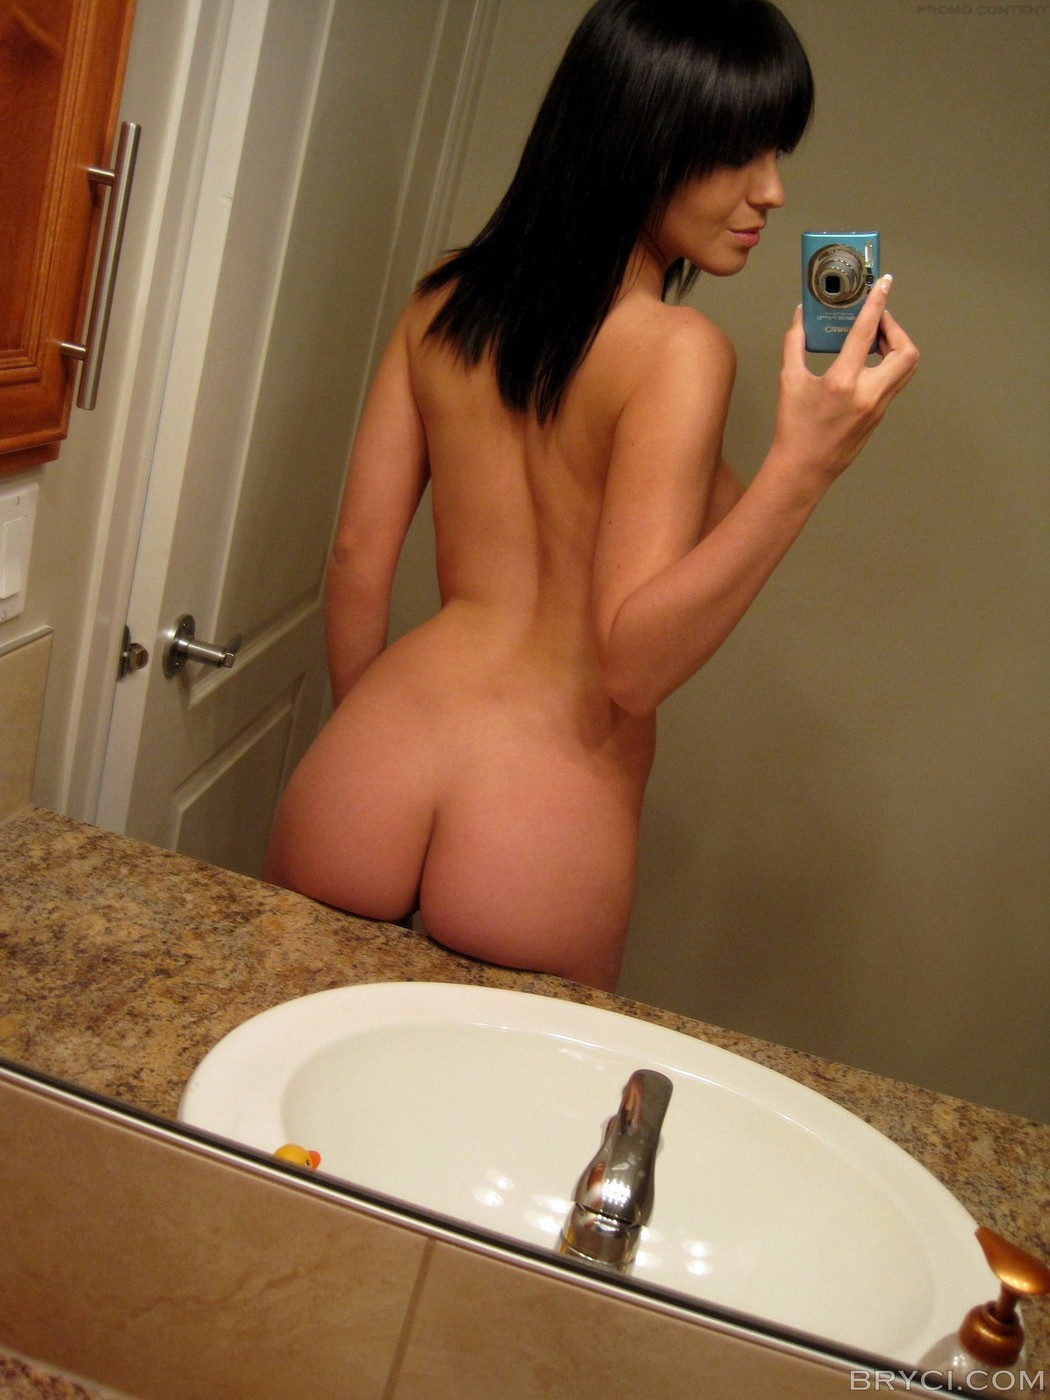 Nude girl mirror shots